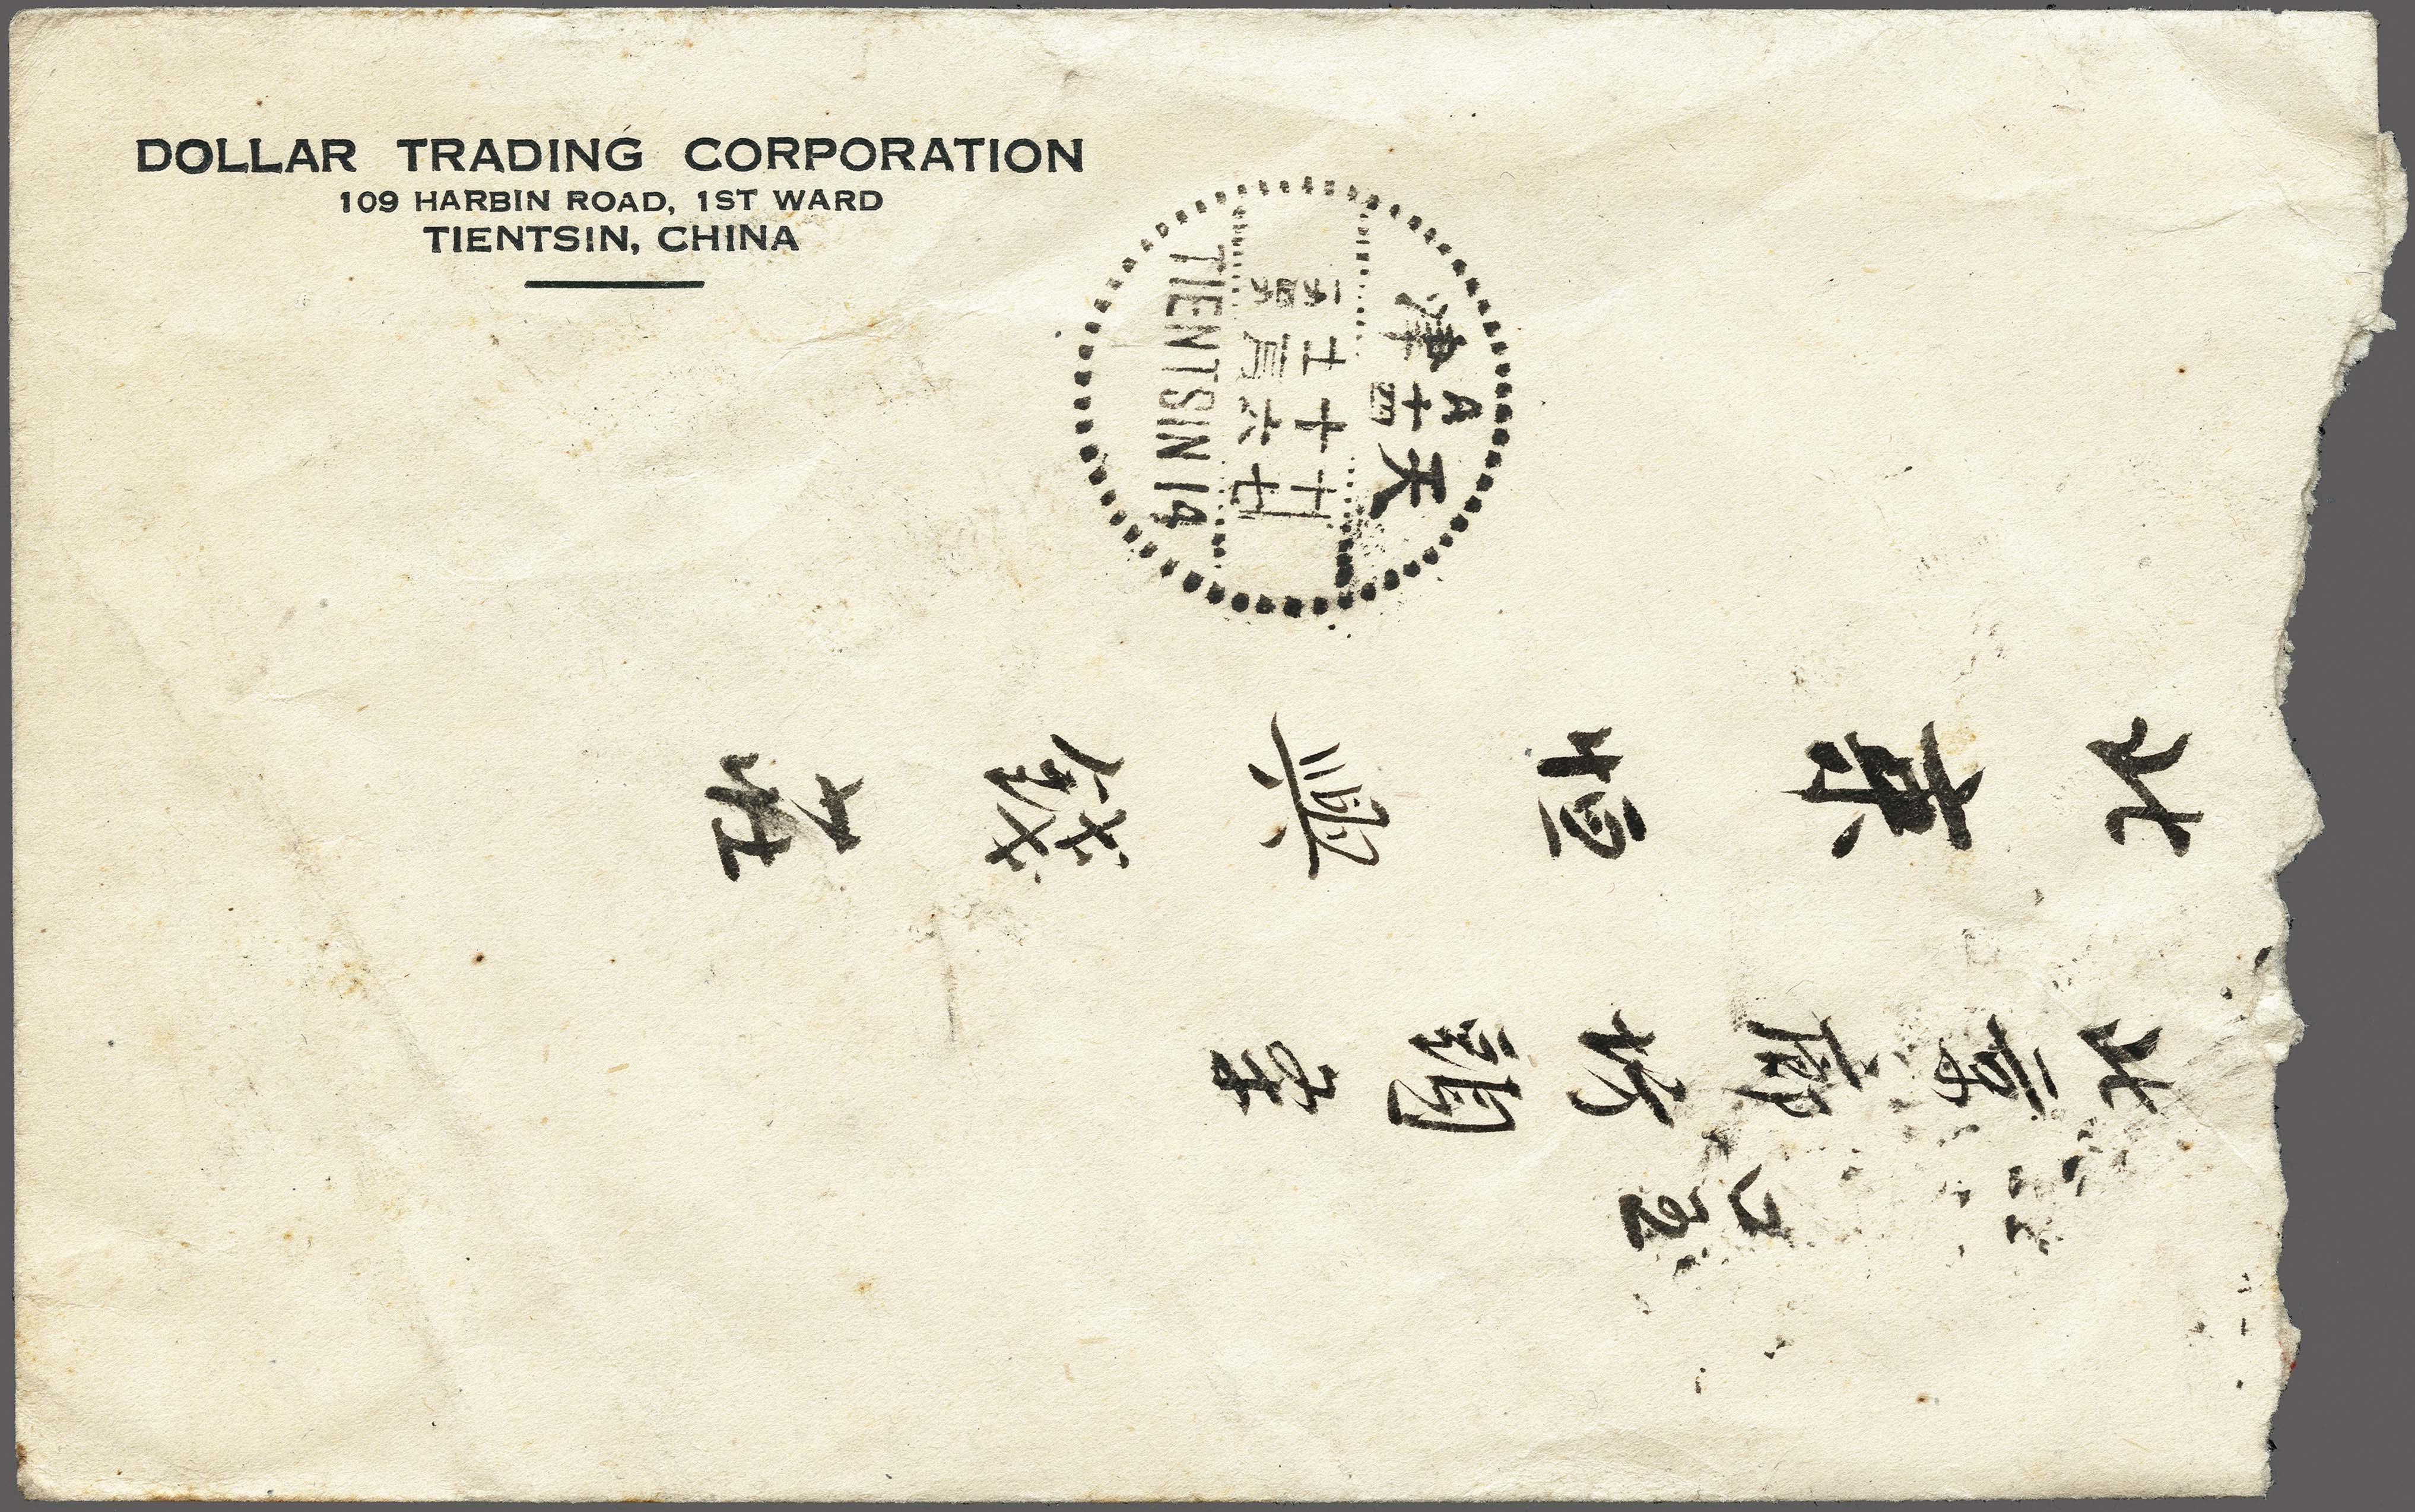 Lot 70 - China China Northern Provinces -  Corinphila Veilingen Auction 250-253 - Day 1 - Foreign countries